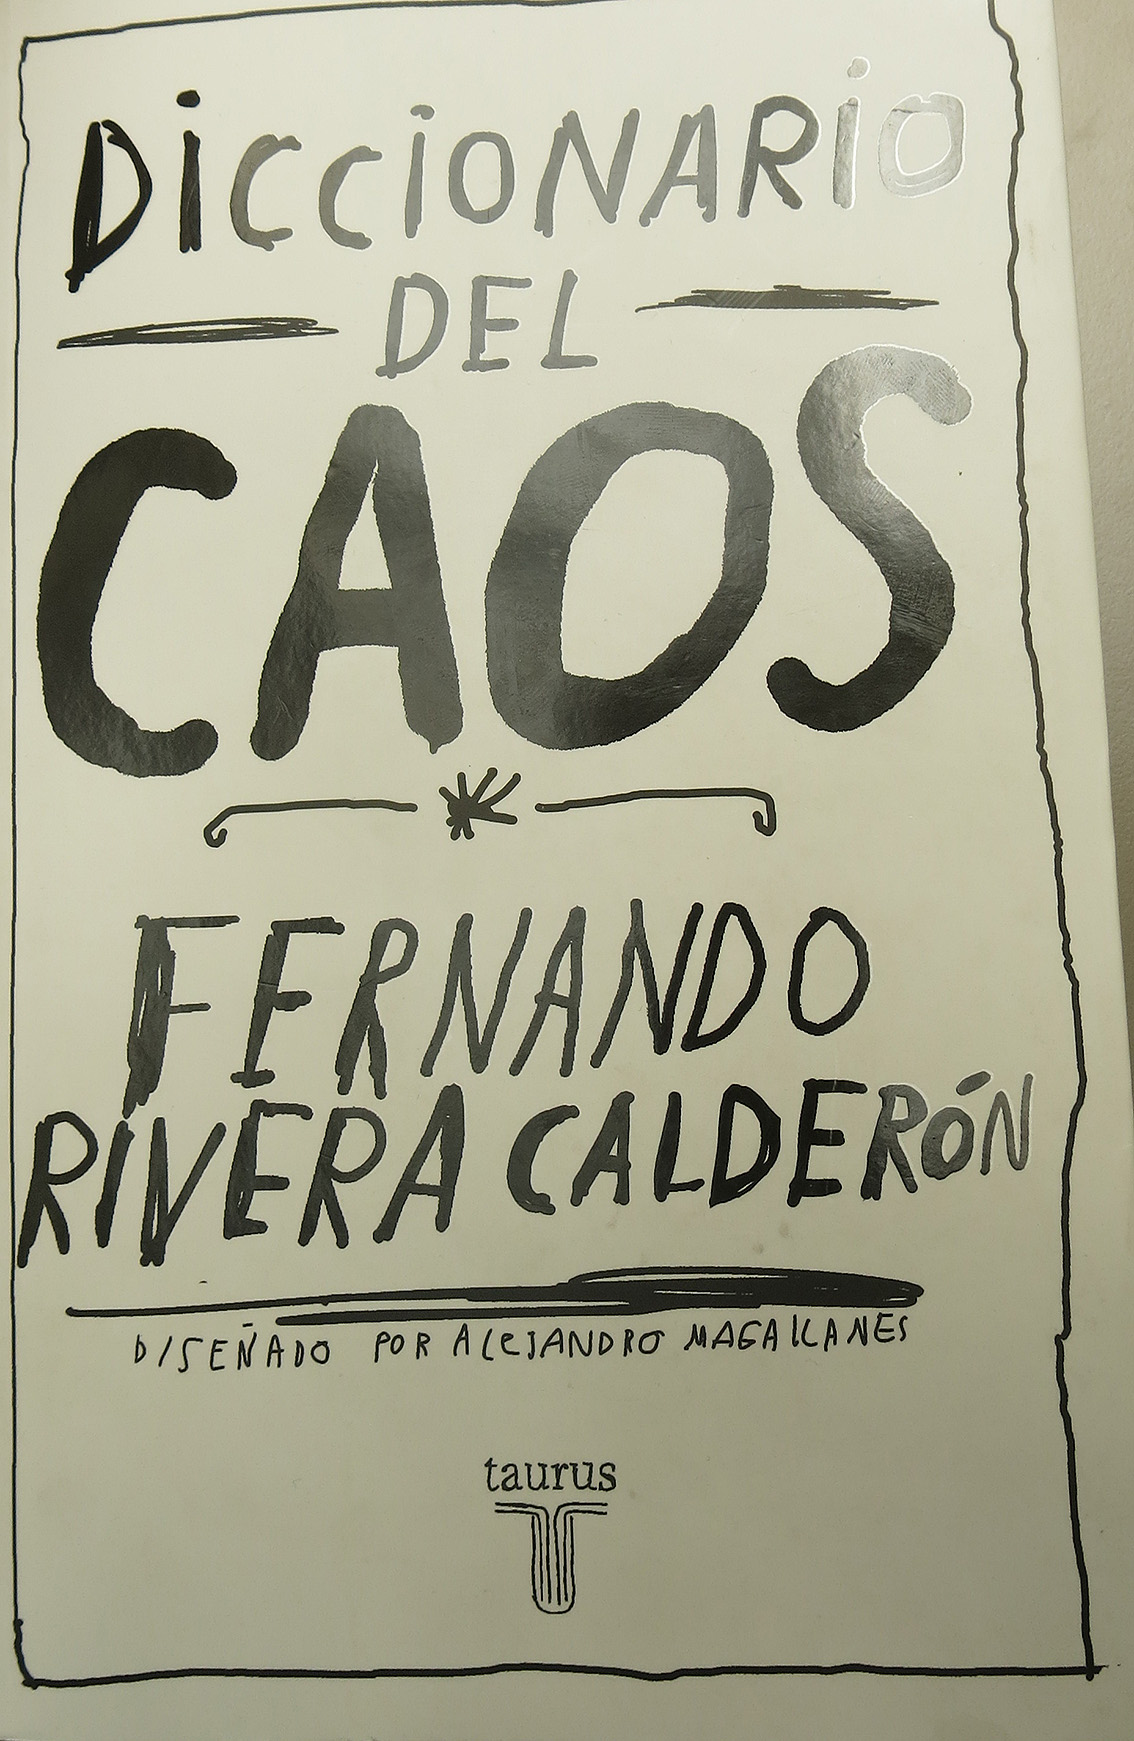 Diccionario del Caos, the excellence of mexican publication design